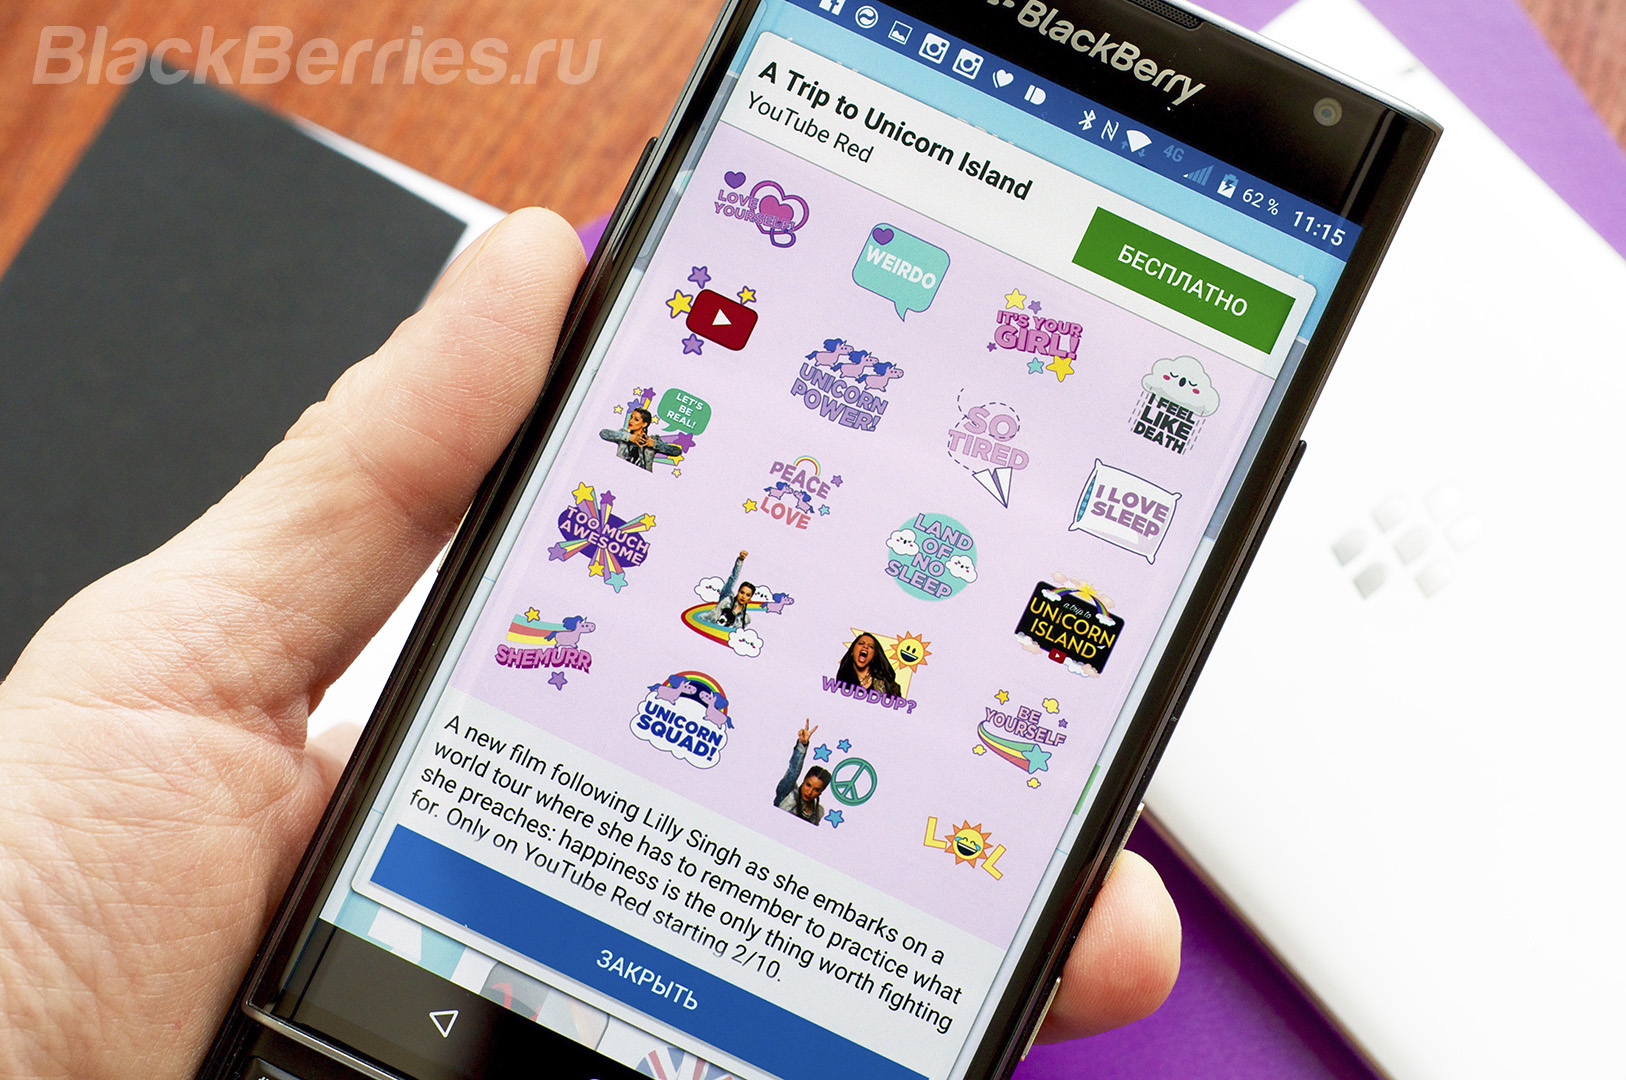 BlackBerry-BBM-Stickers-1